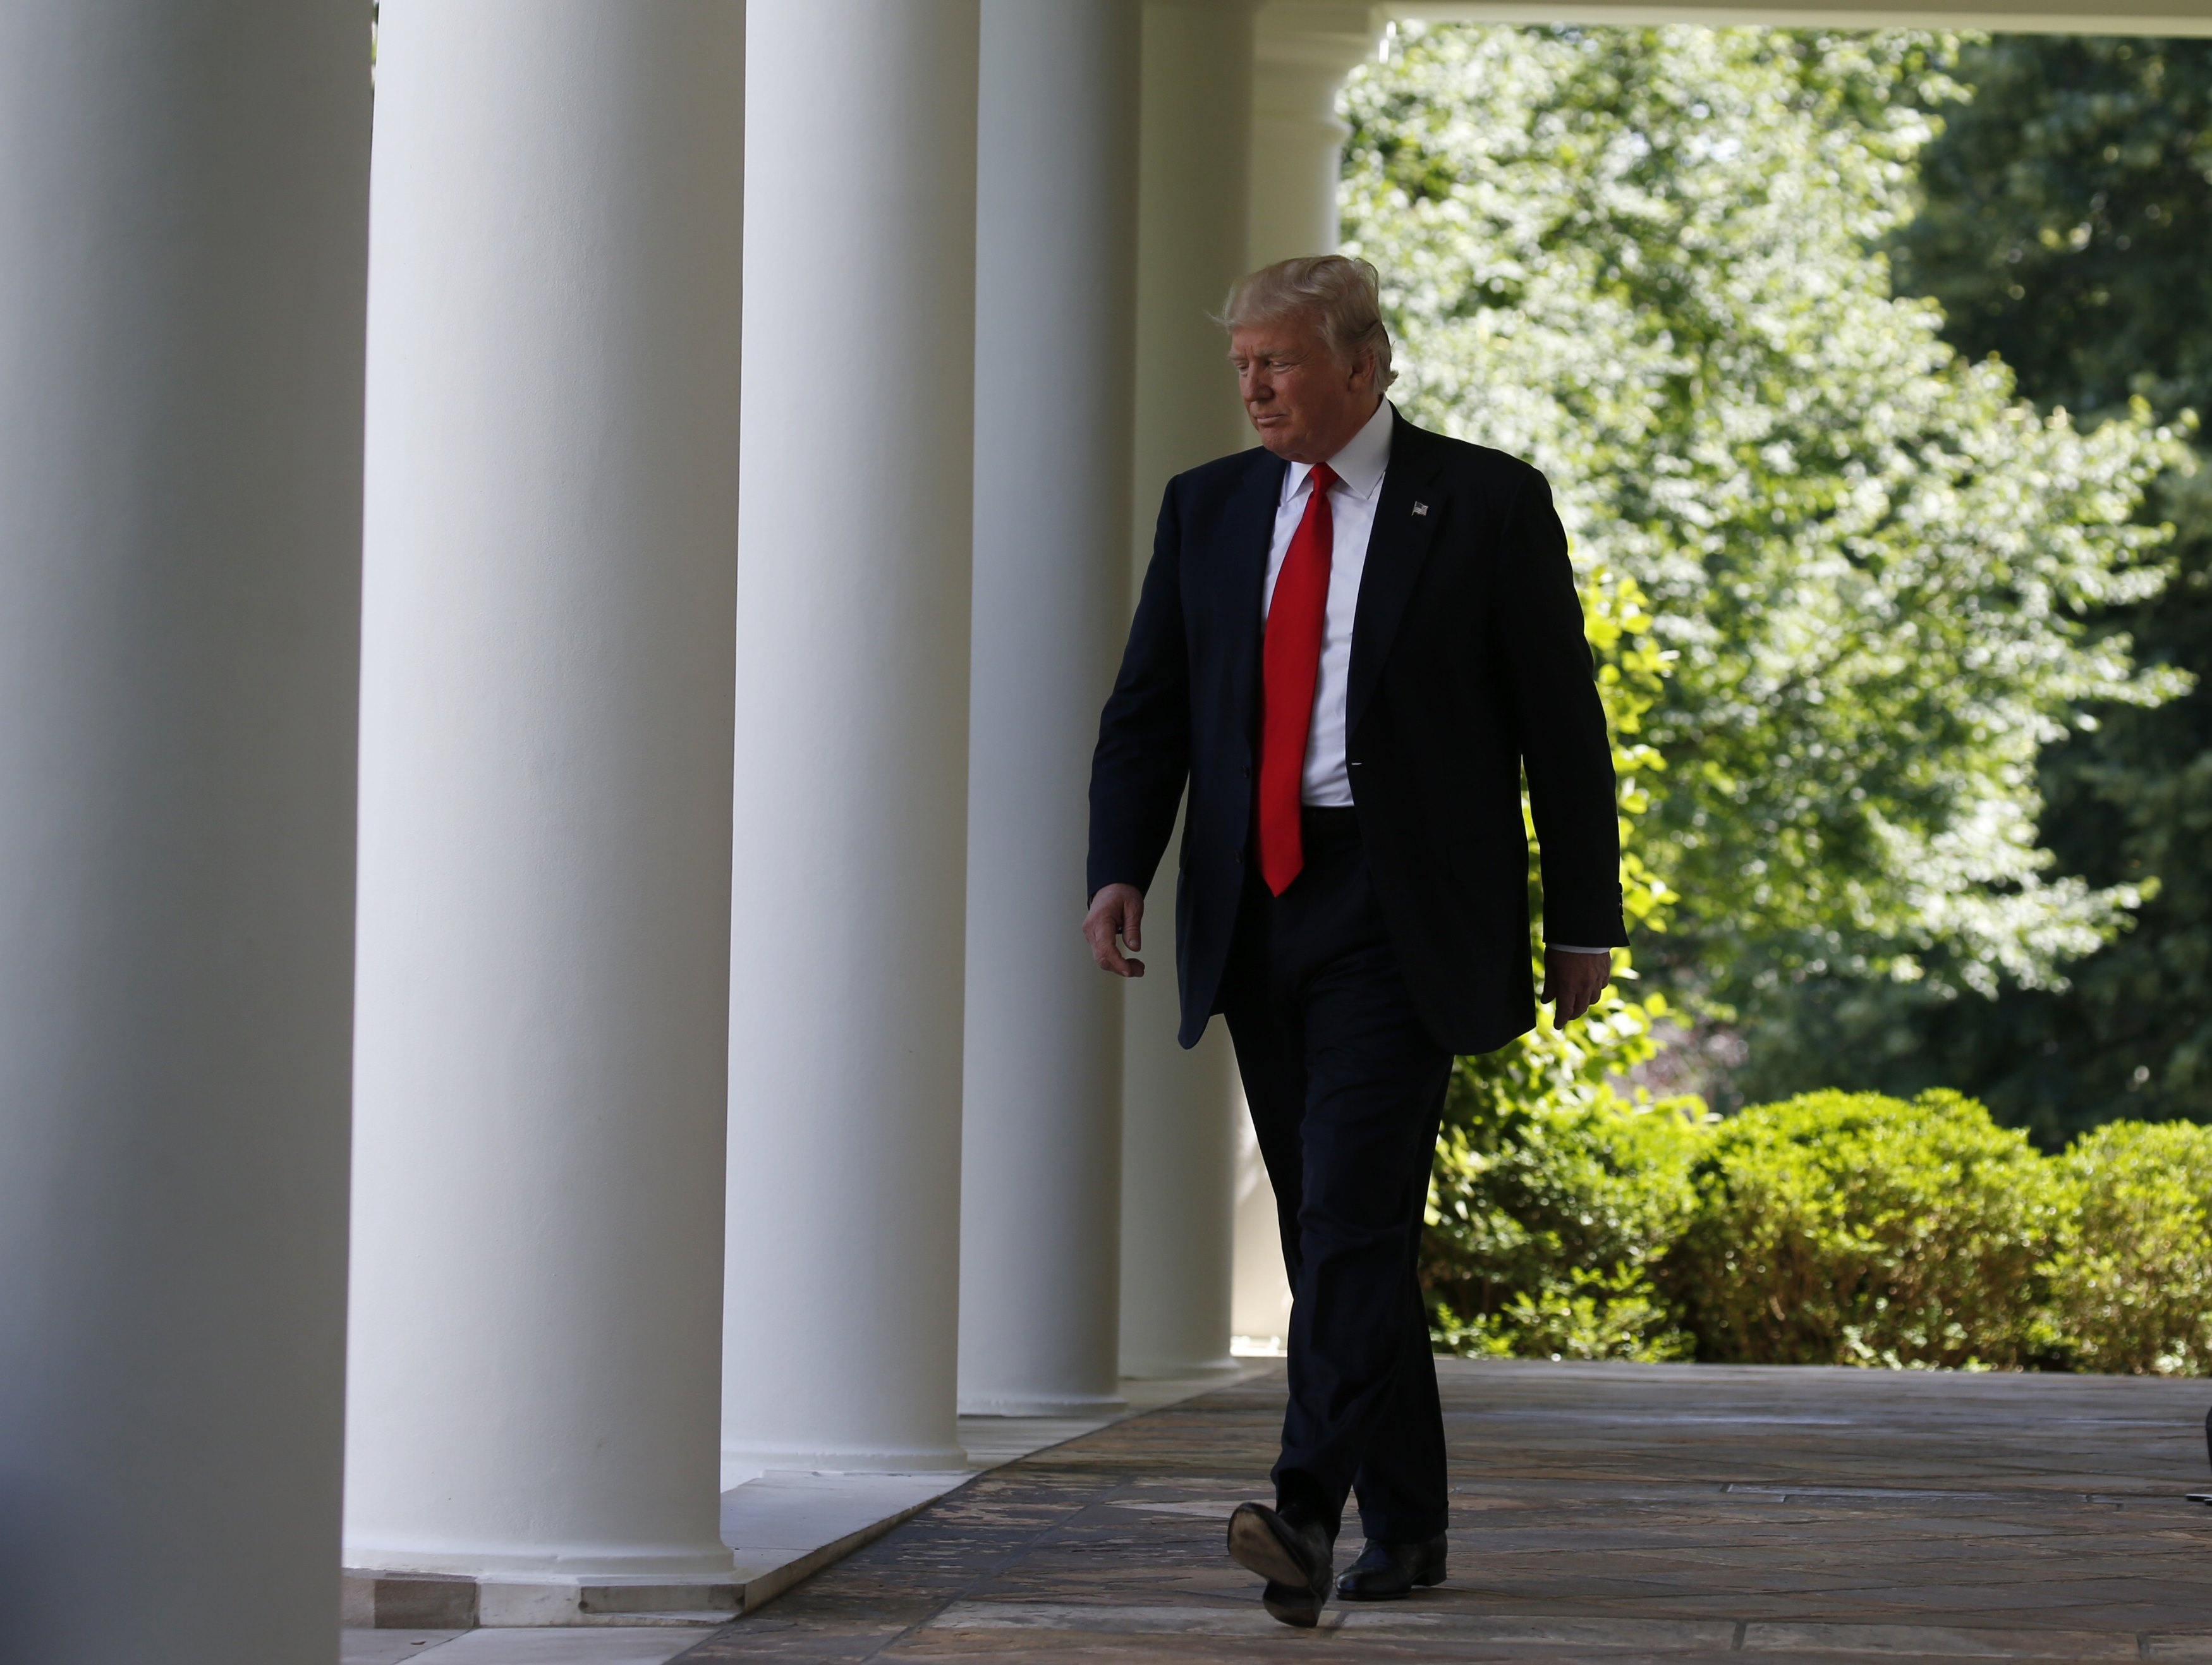 President Donald Trump arrives to announce his decision that the United States will withdraw from the landmark Paris Climate Agreement, in the Rose Garden of the White House in Washington on June 1, 2017. (REUTERS/Joshua Roberts)